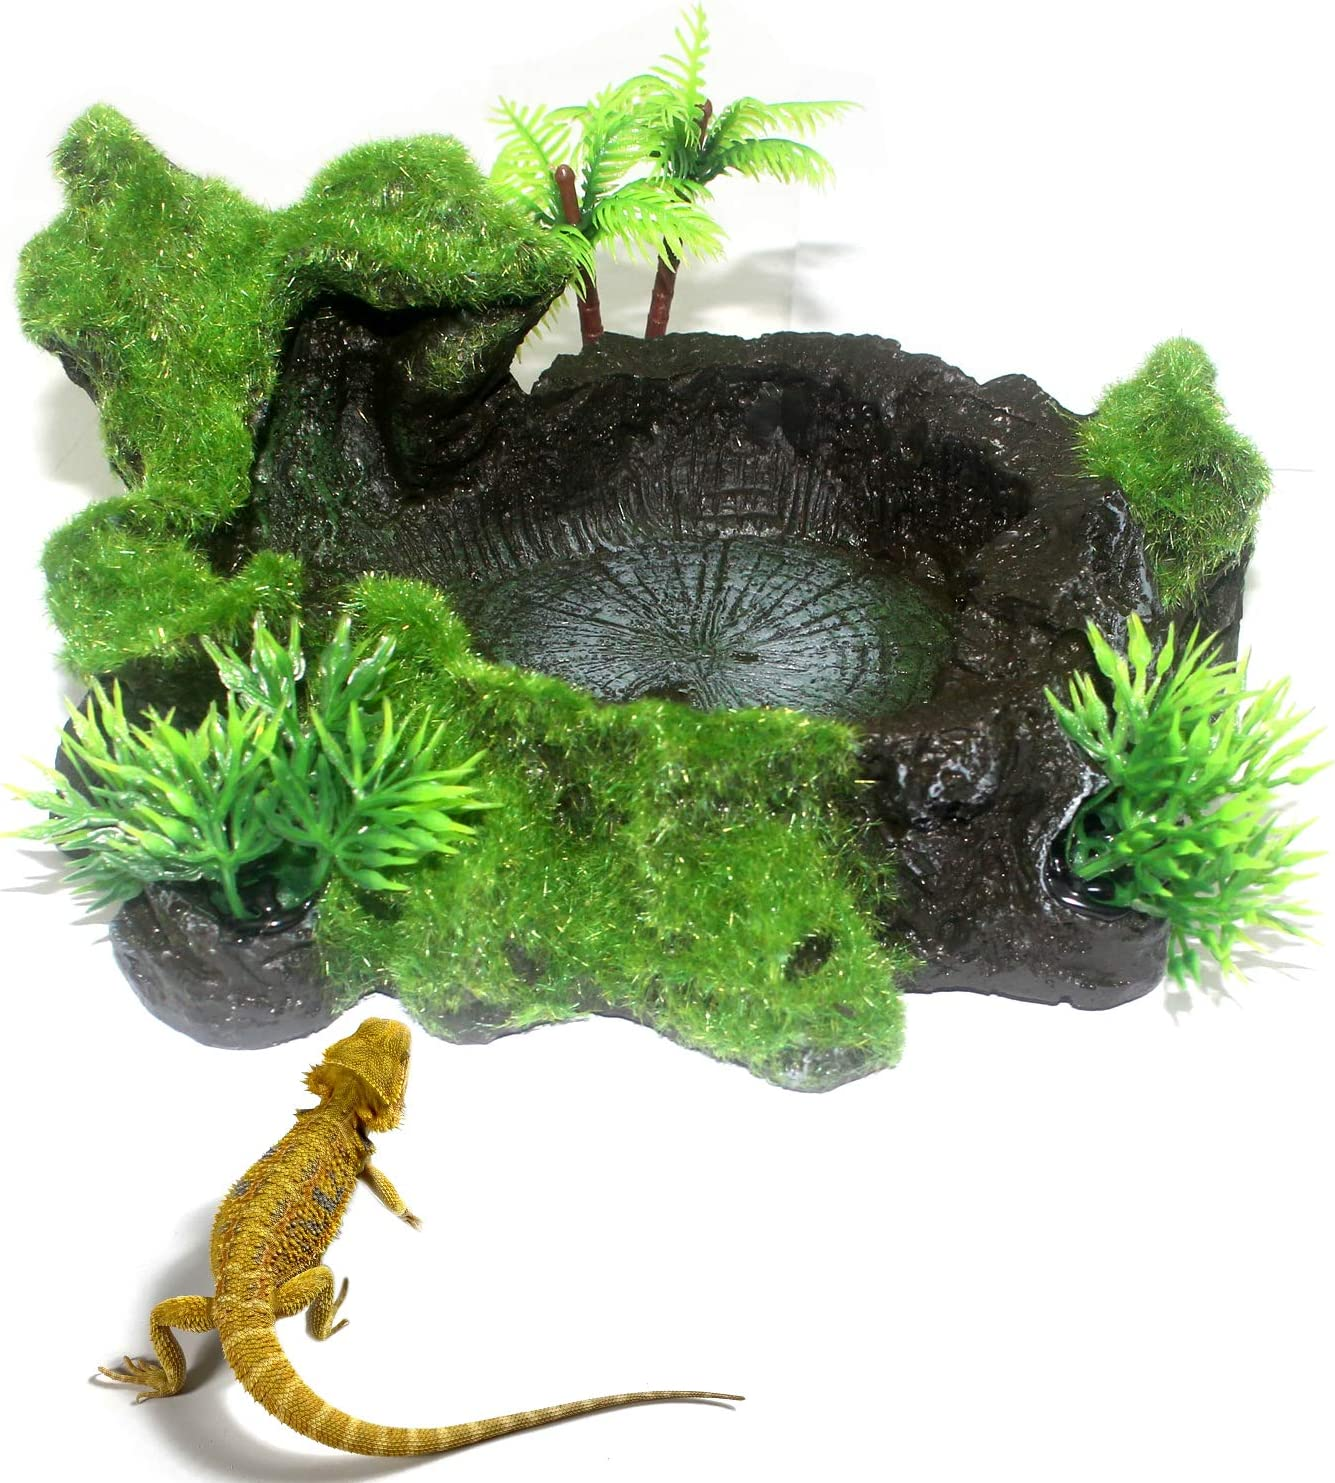 WeiMeet Plastic Reptile Tank Artificial Tree Trunk Reptile Platform Resin Reptile Tank Water Dish Bowl for Lizard Water Frog Gecko and Other Reptile